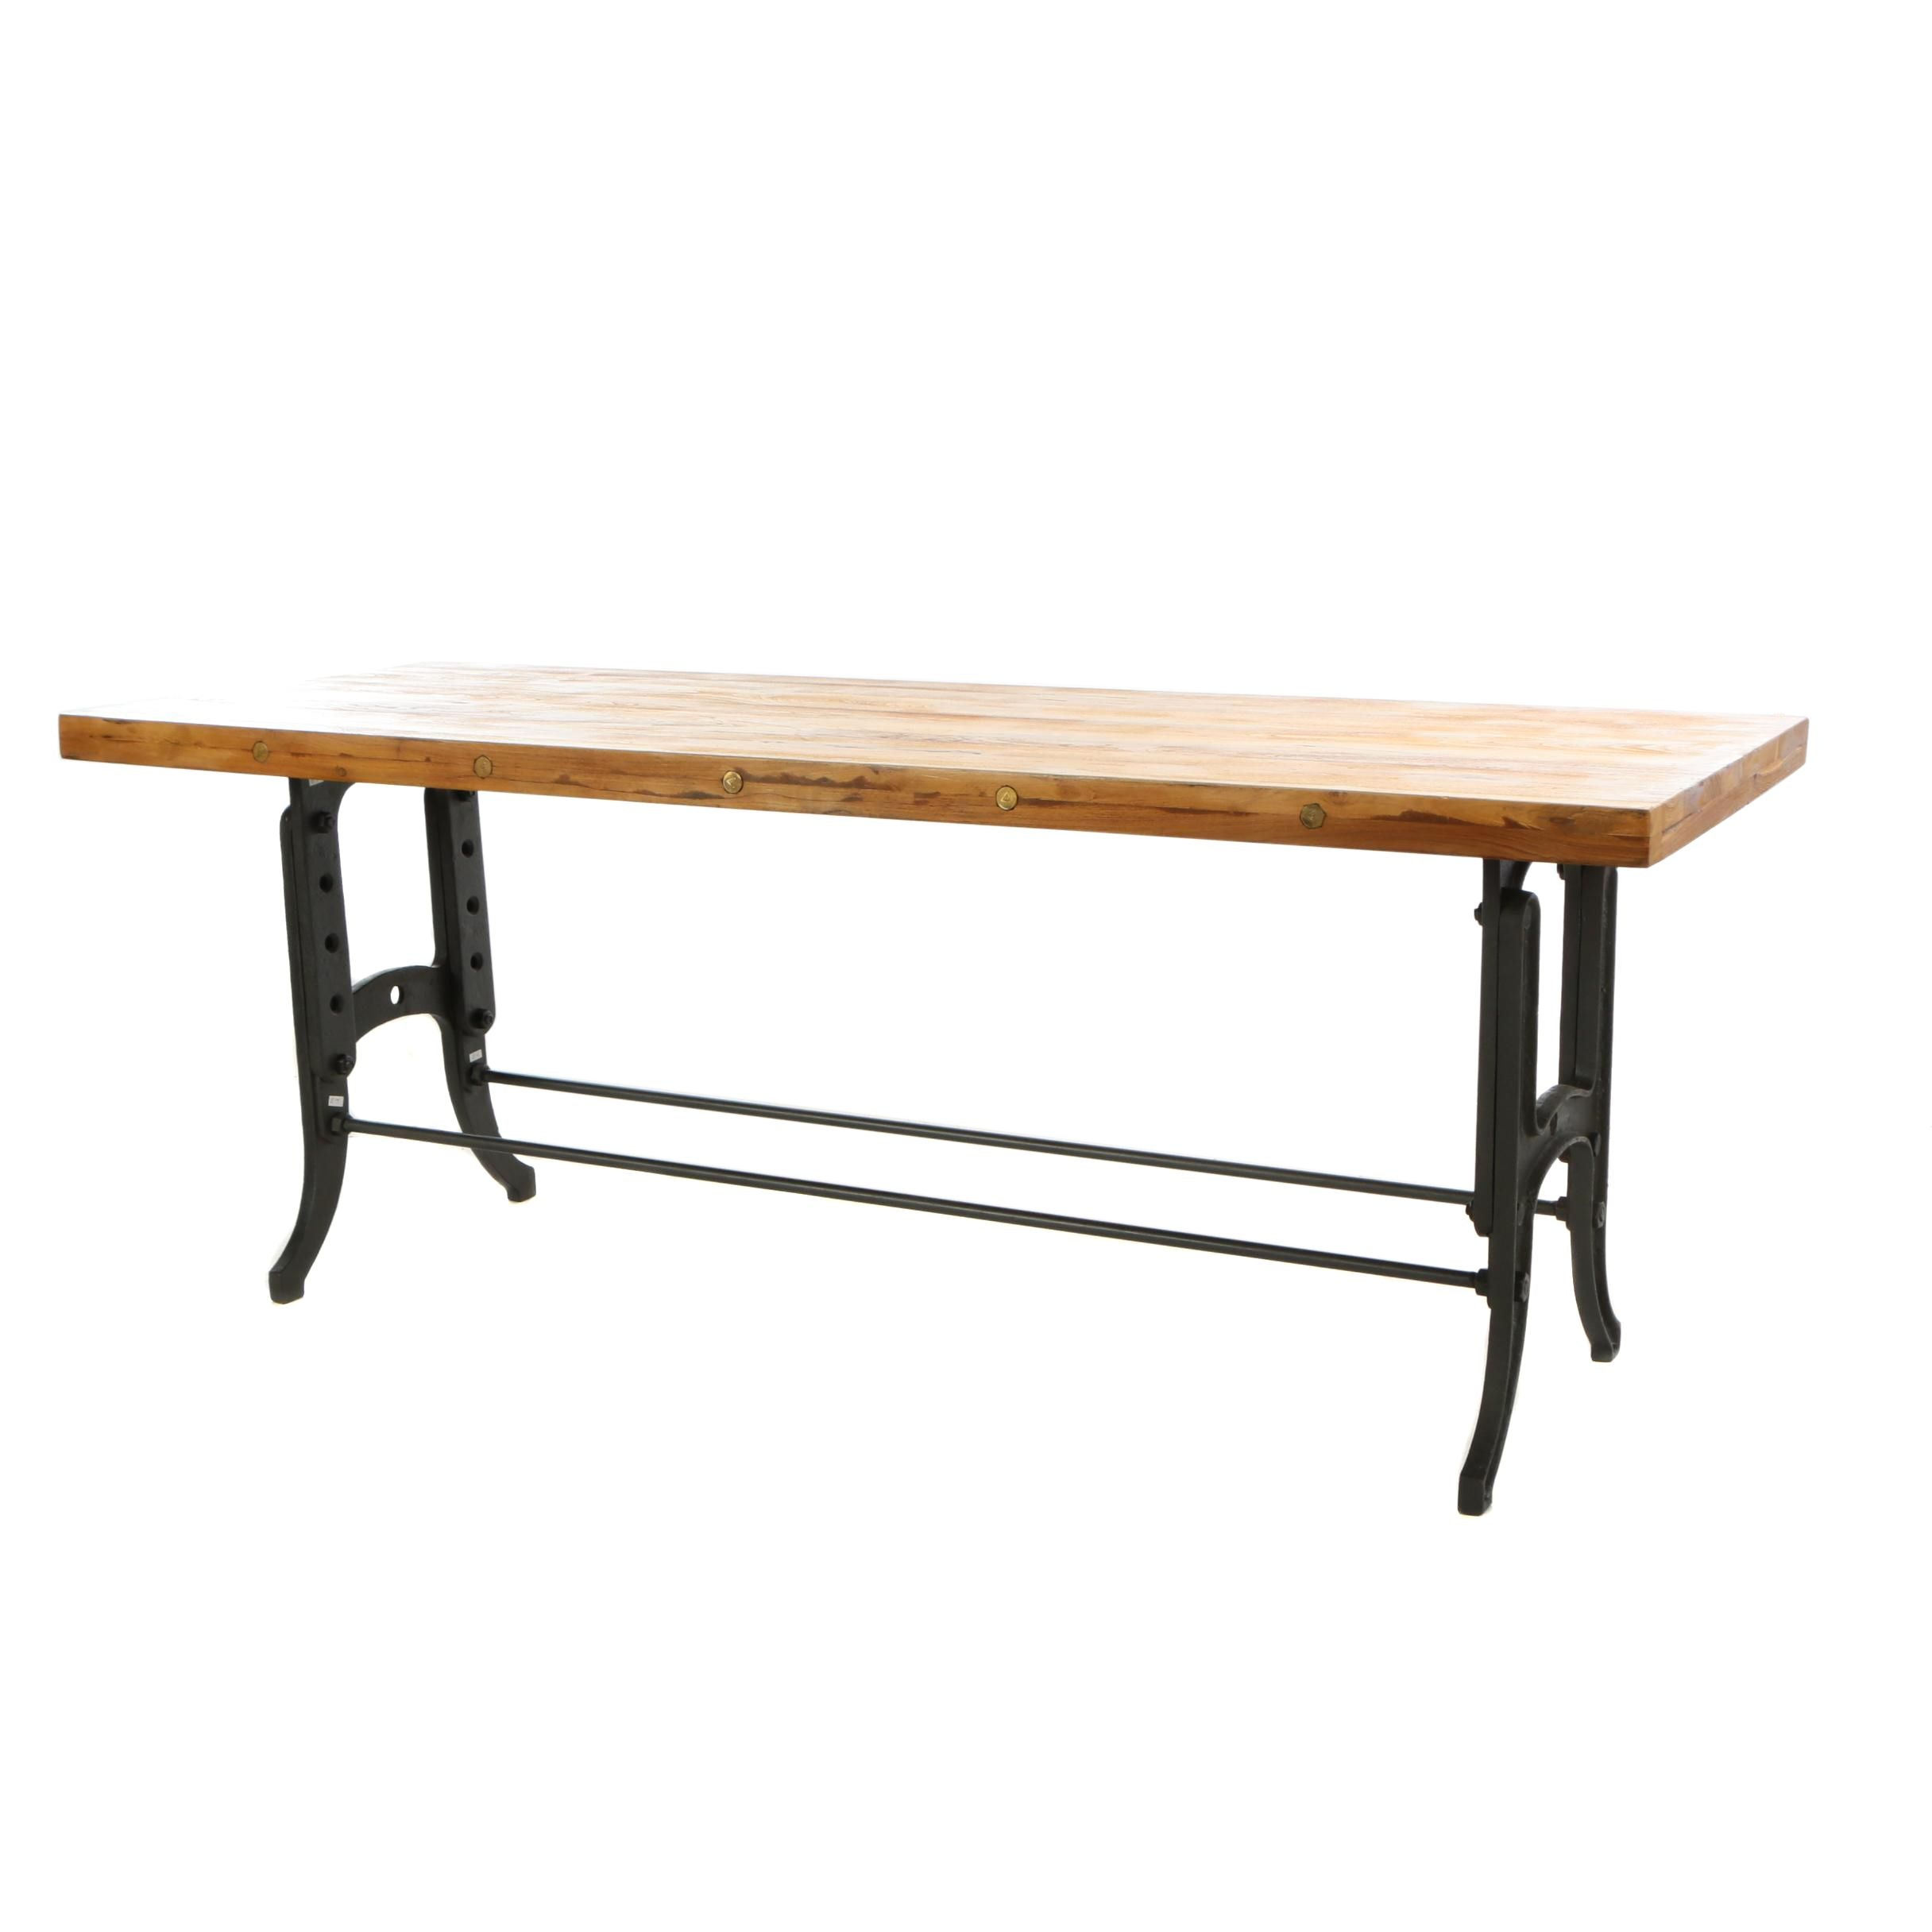 "Industrial Style ""Savile Row"" Pine and Metal Dining Table"